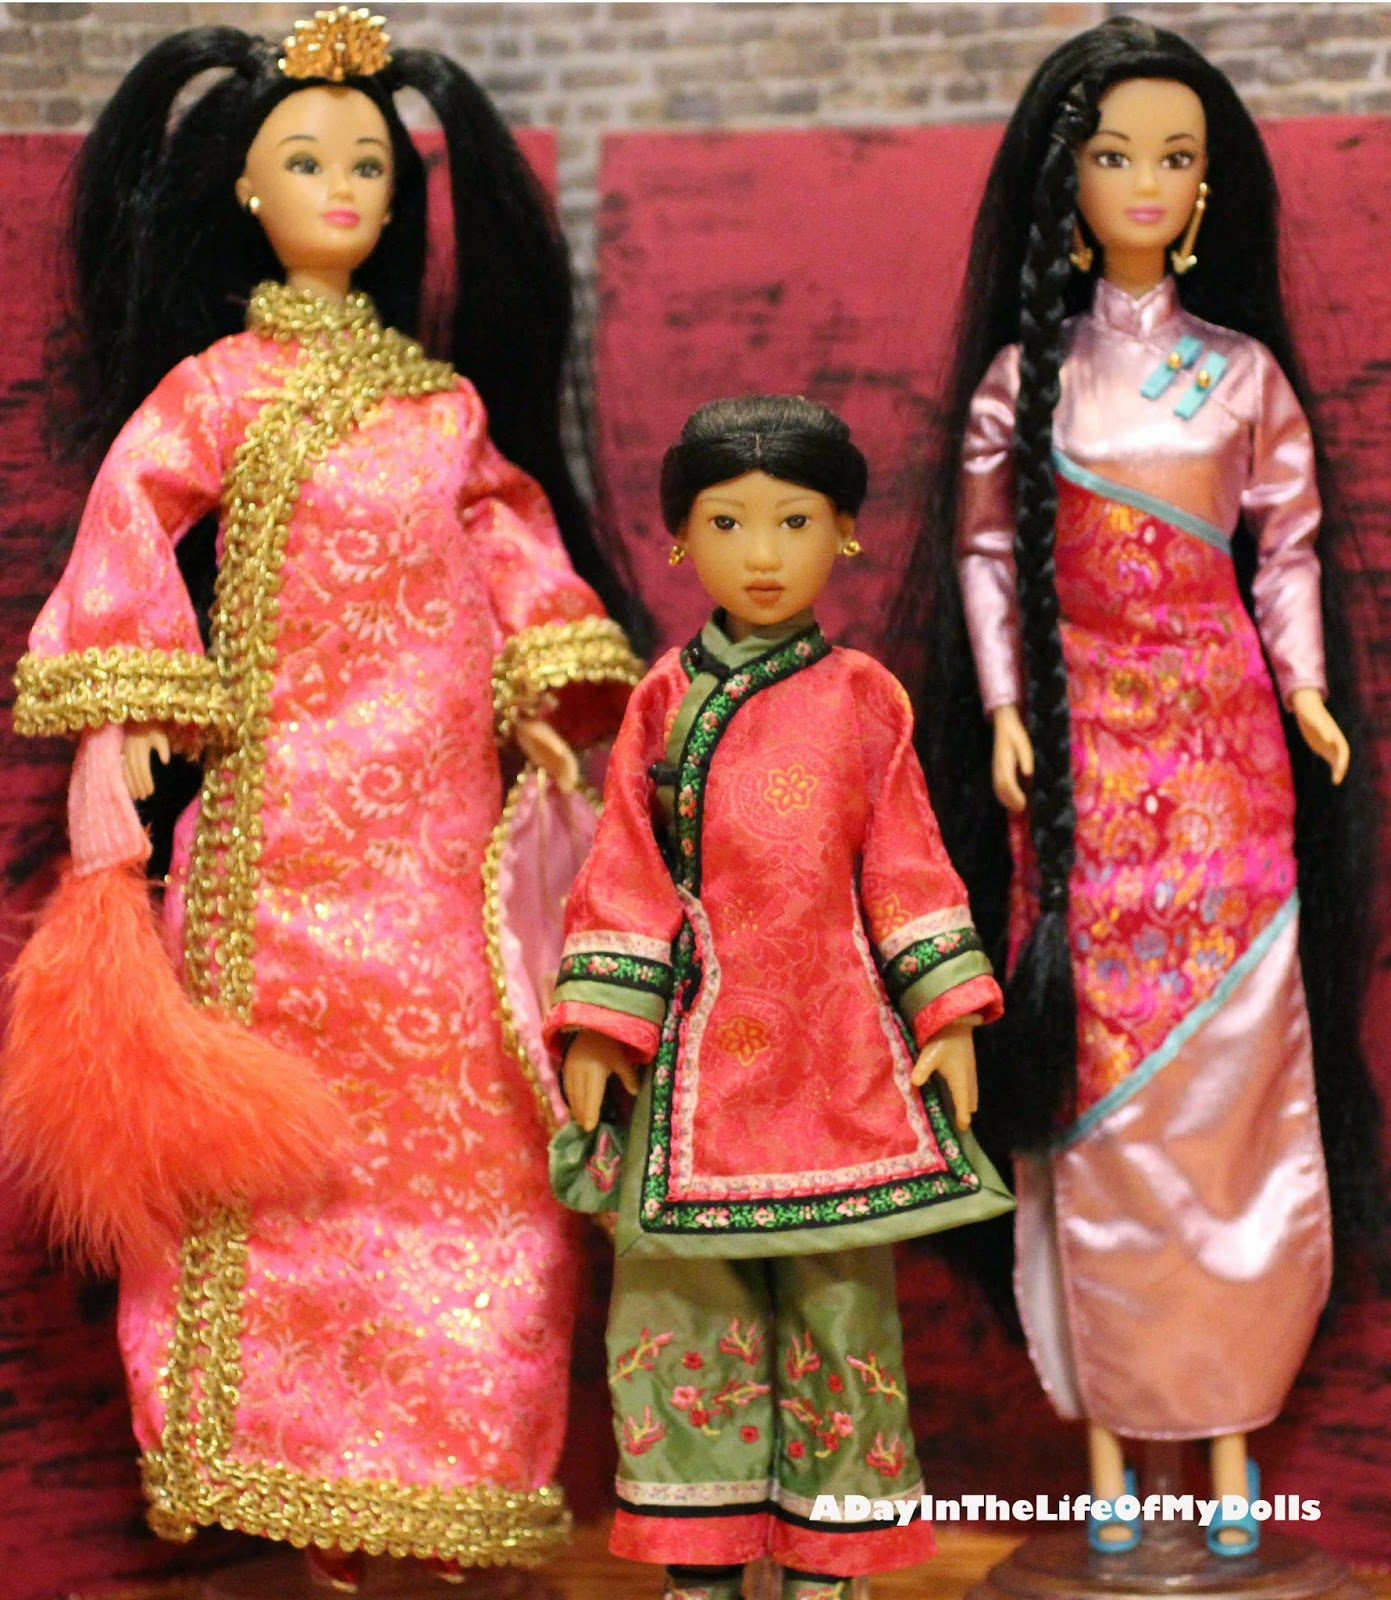 A Day In The Life Of My Dolls: Happy Chinese New Year!